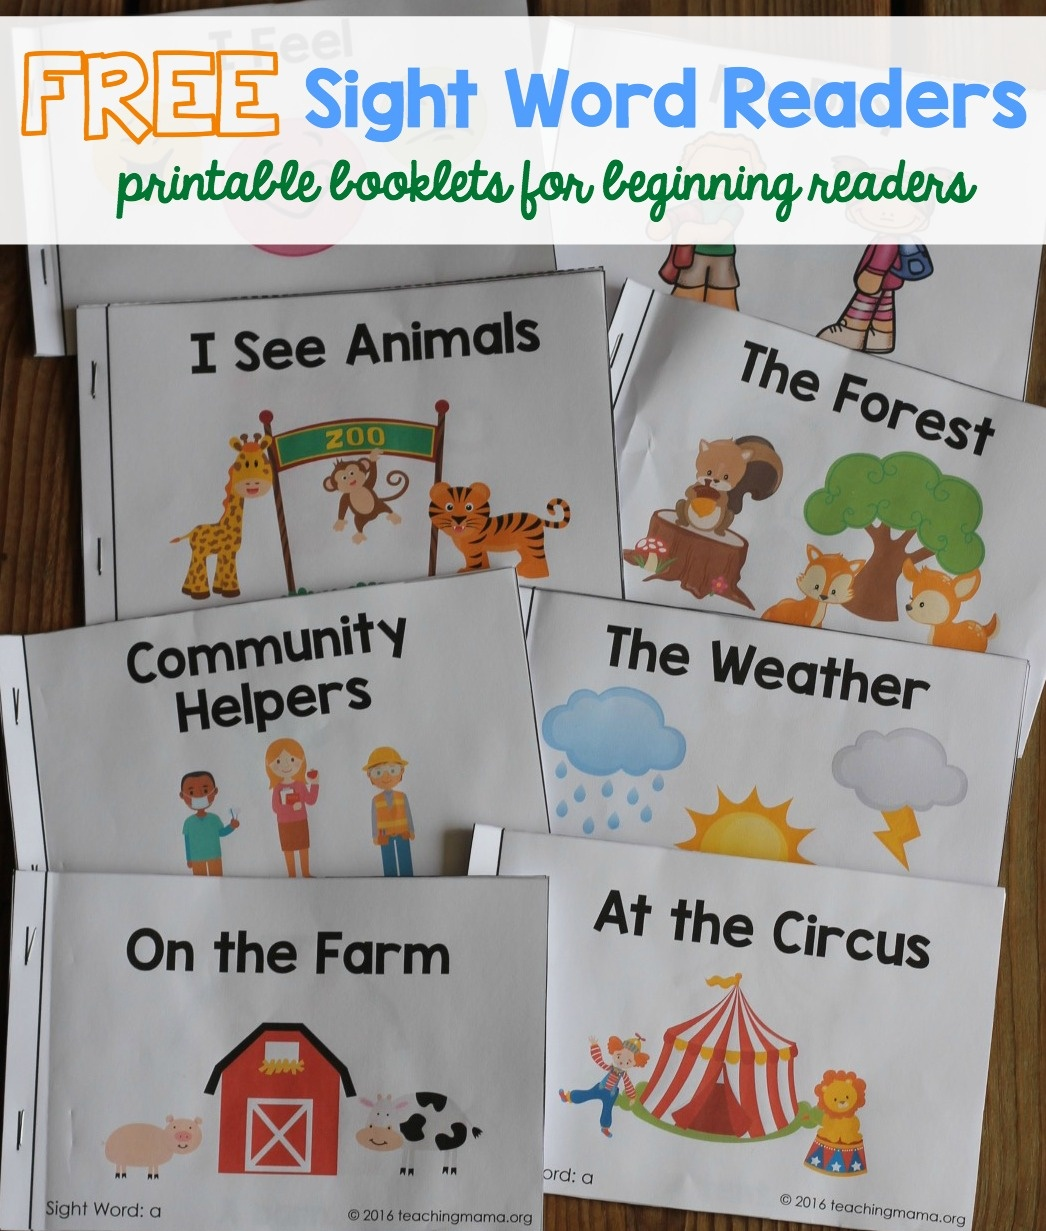 Sight Word Readers - Free Printable Story Books For Kindergarten